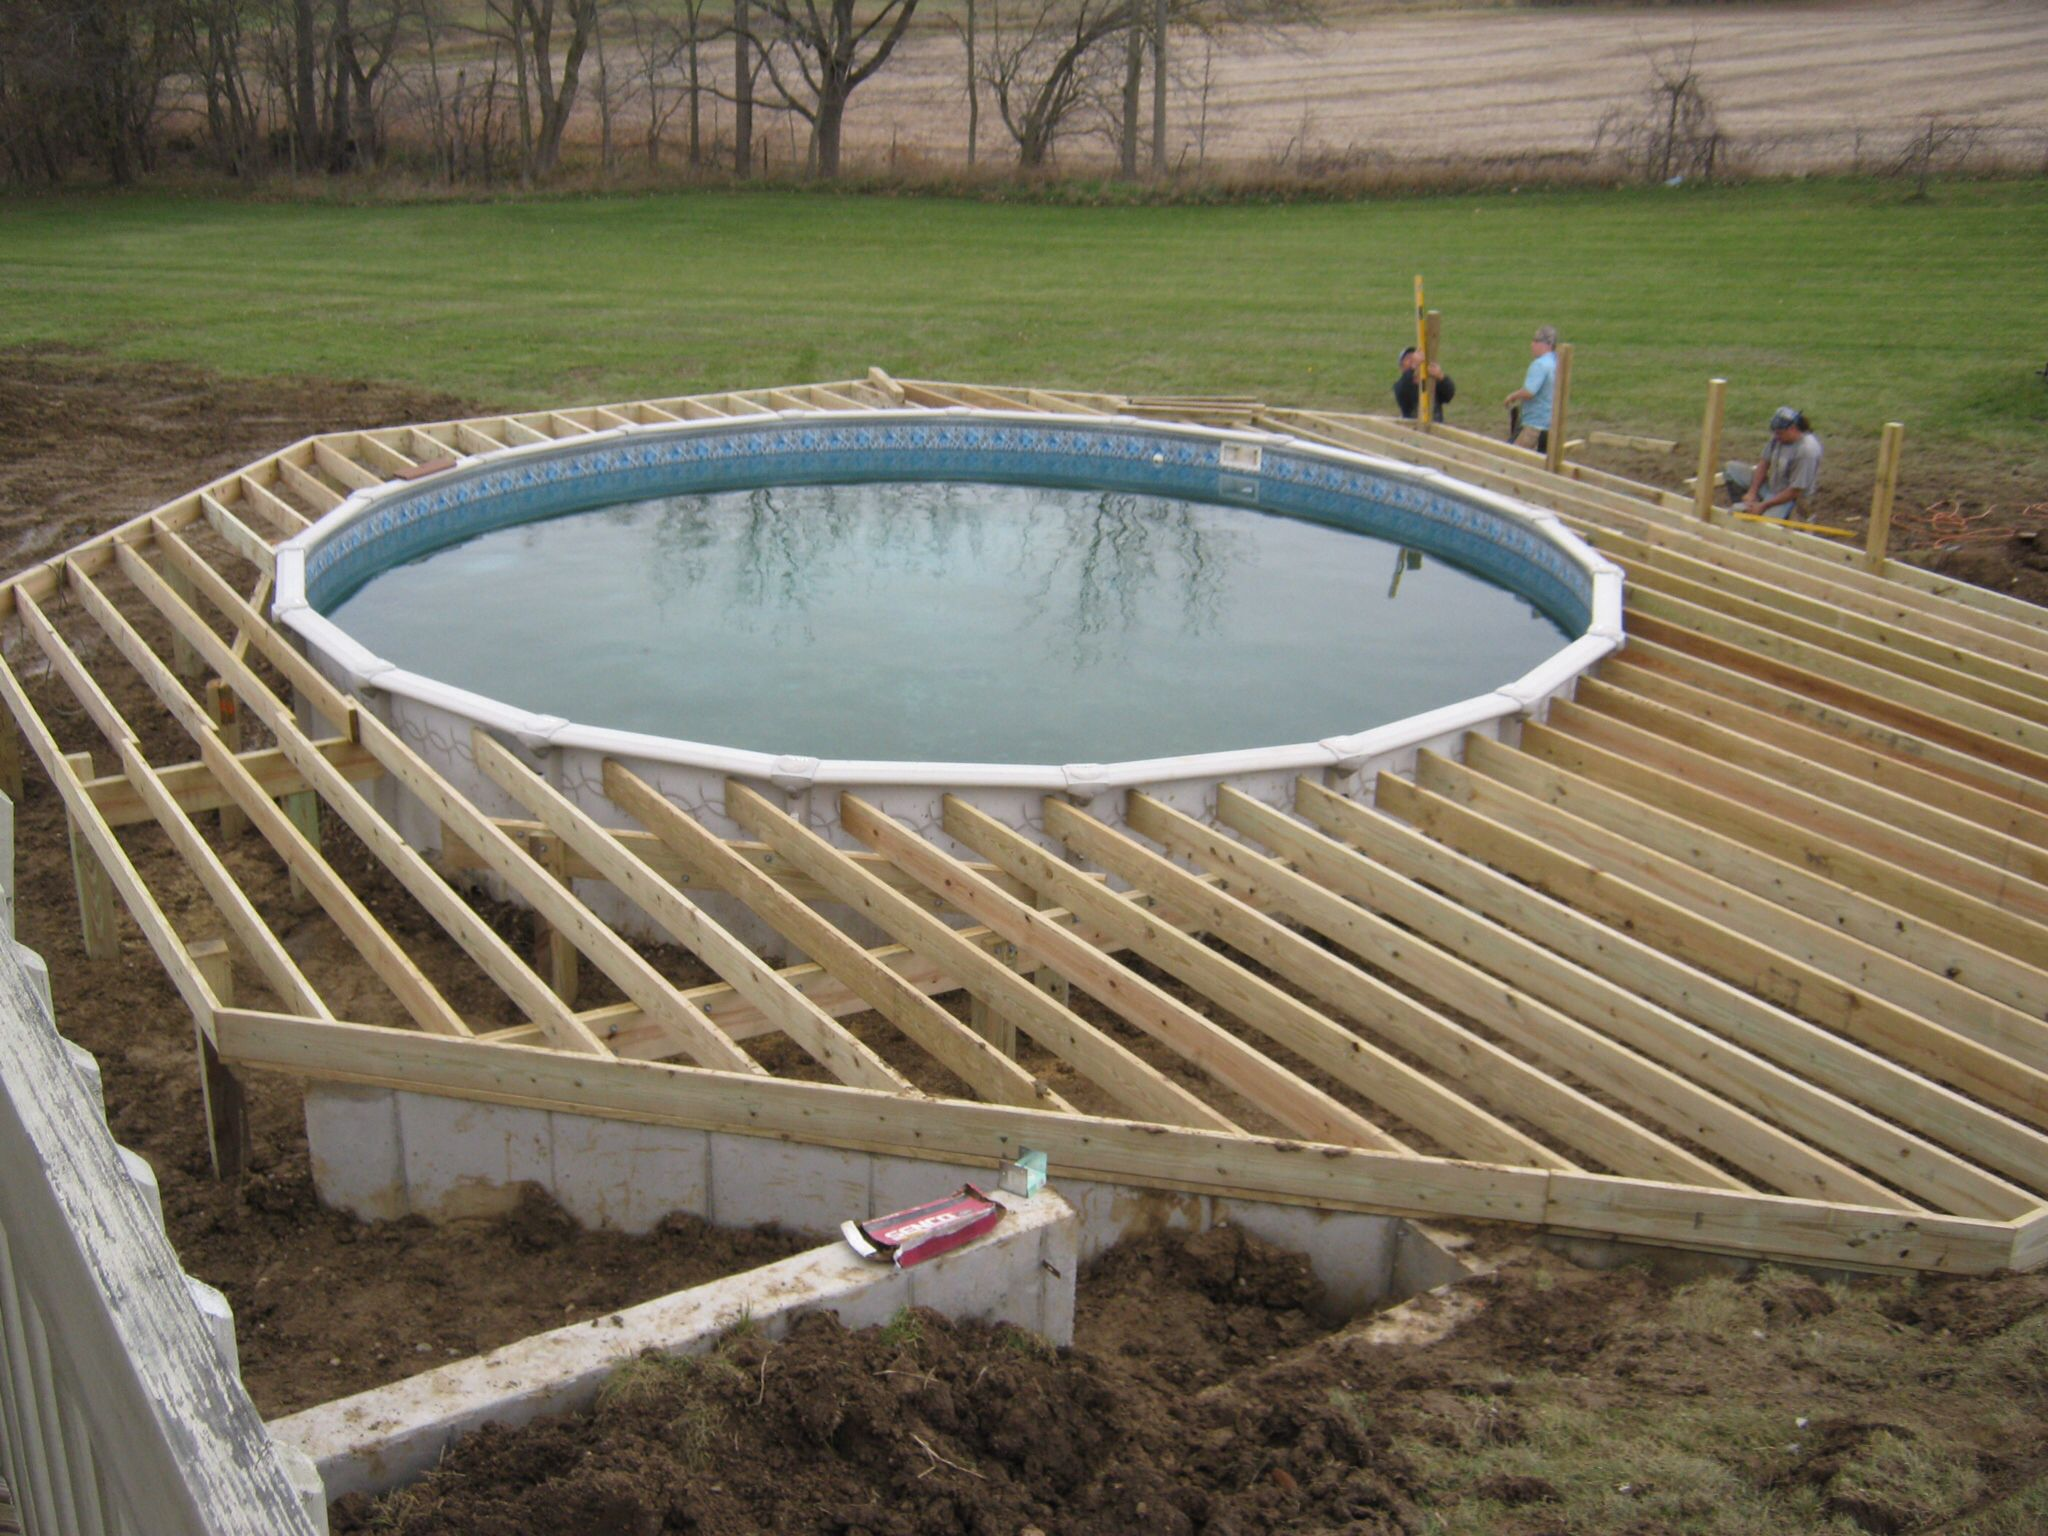 Pool Im Garten Intex Pool Design Pool Hot Tub Ideas Pool Im Garten